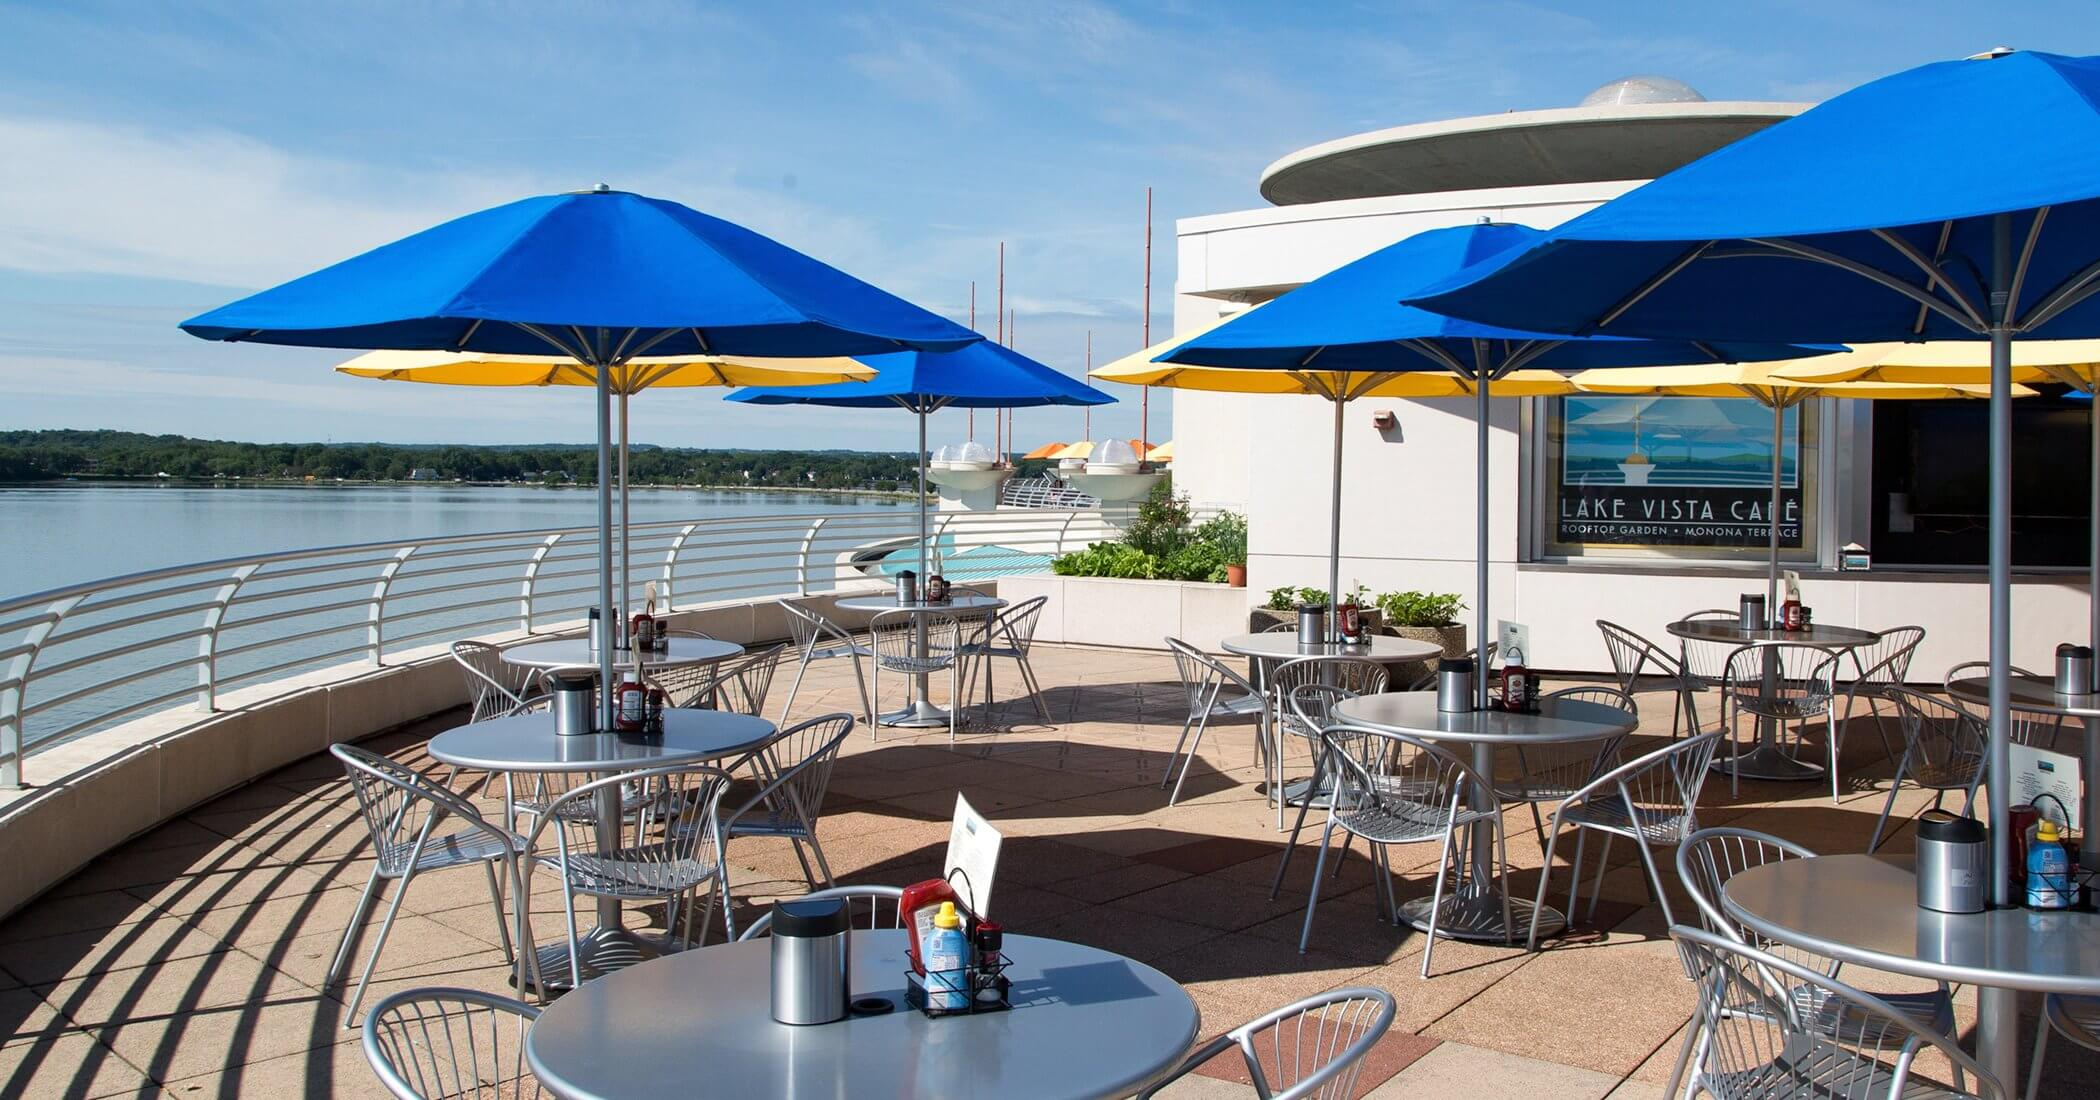 Empty tables at Lake Vista Cafe with a view of the lake with yellow and blue umbrella canopies